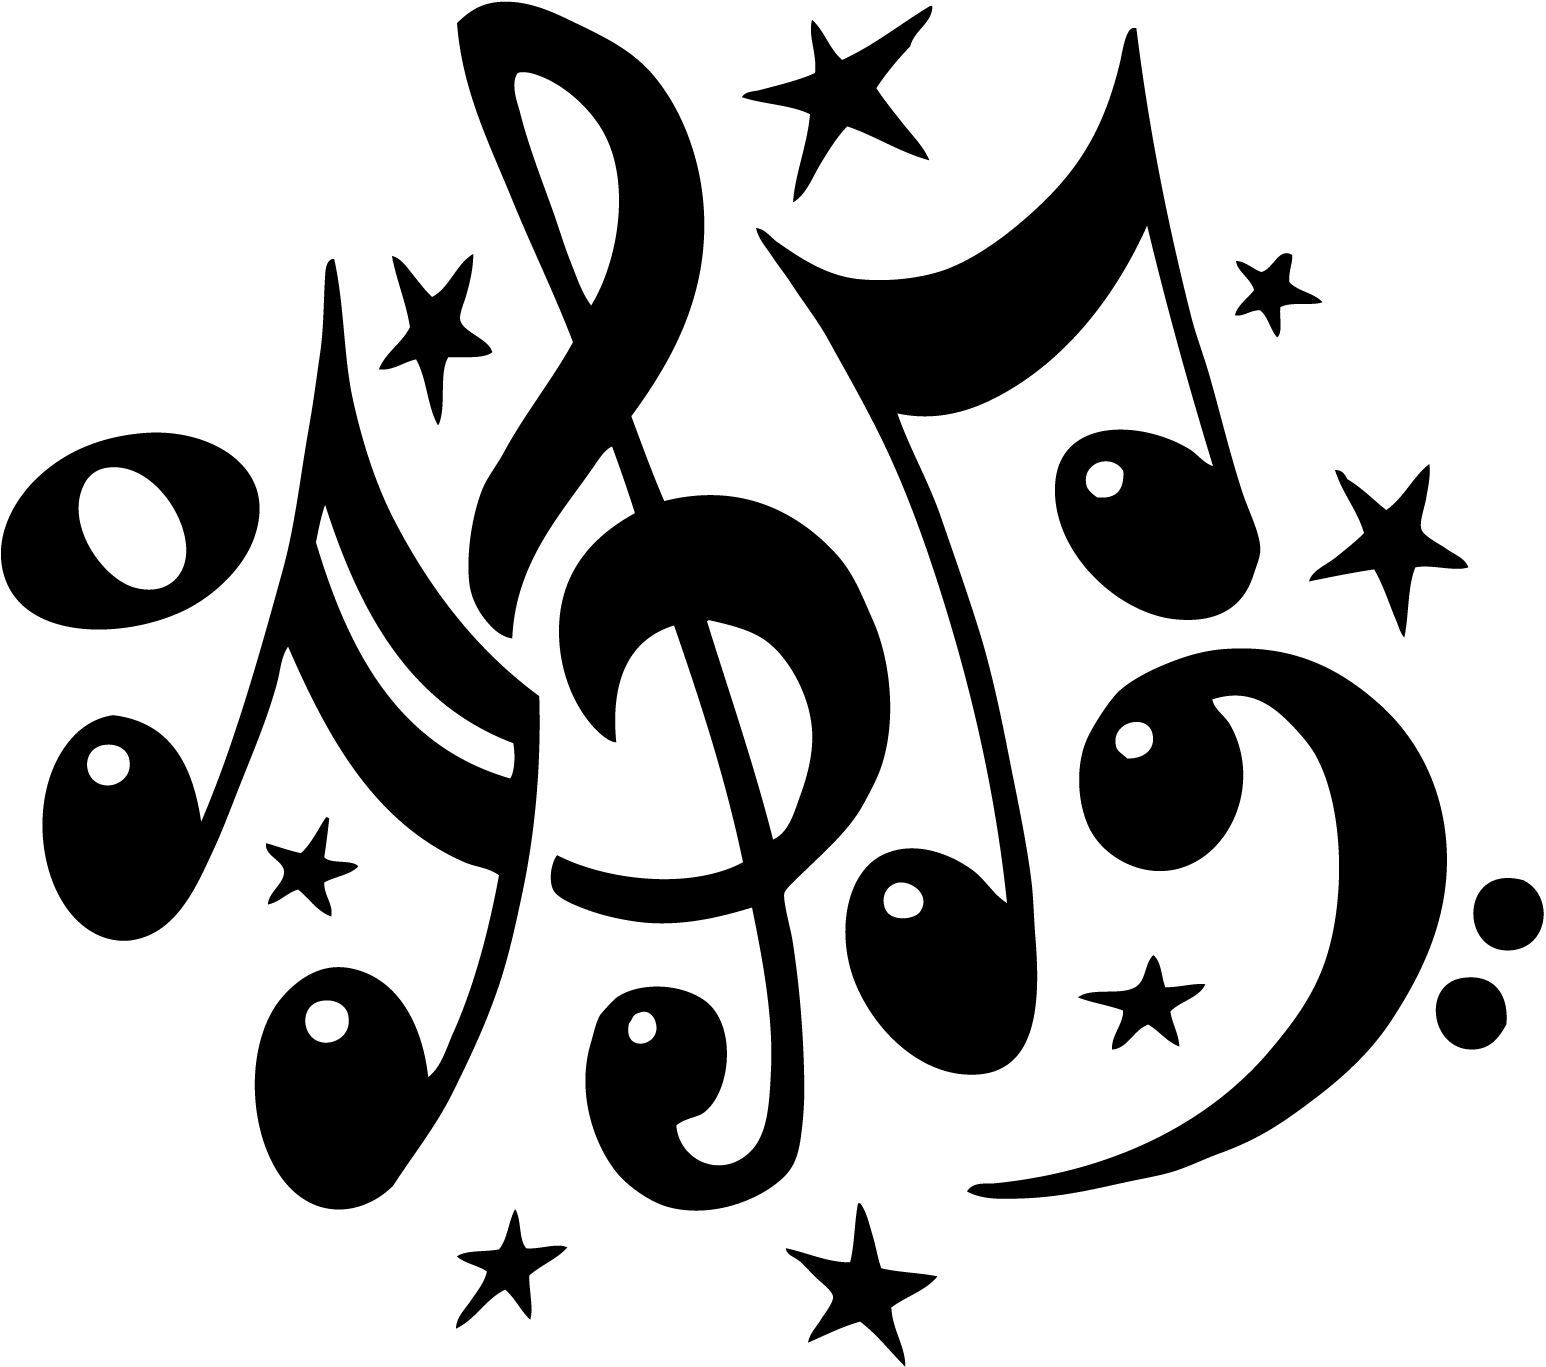 Music notes musical notes clip art free music note clipart image 1 3 - Clipartix